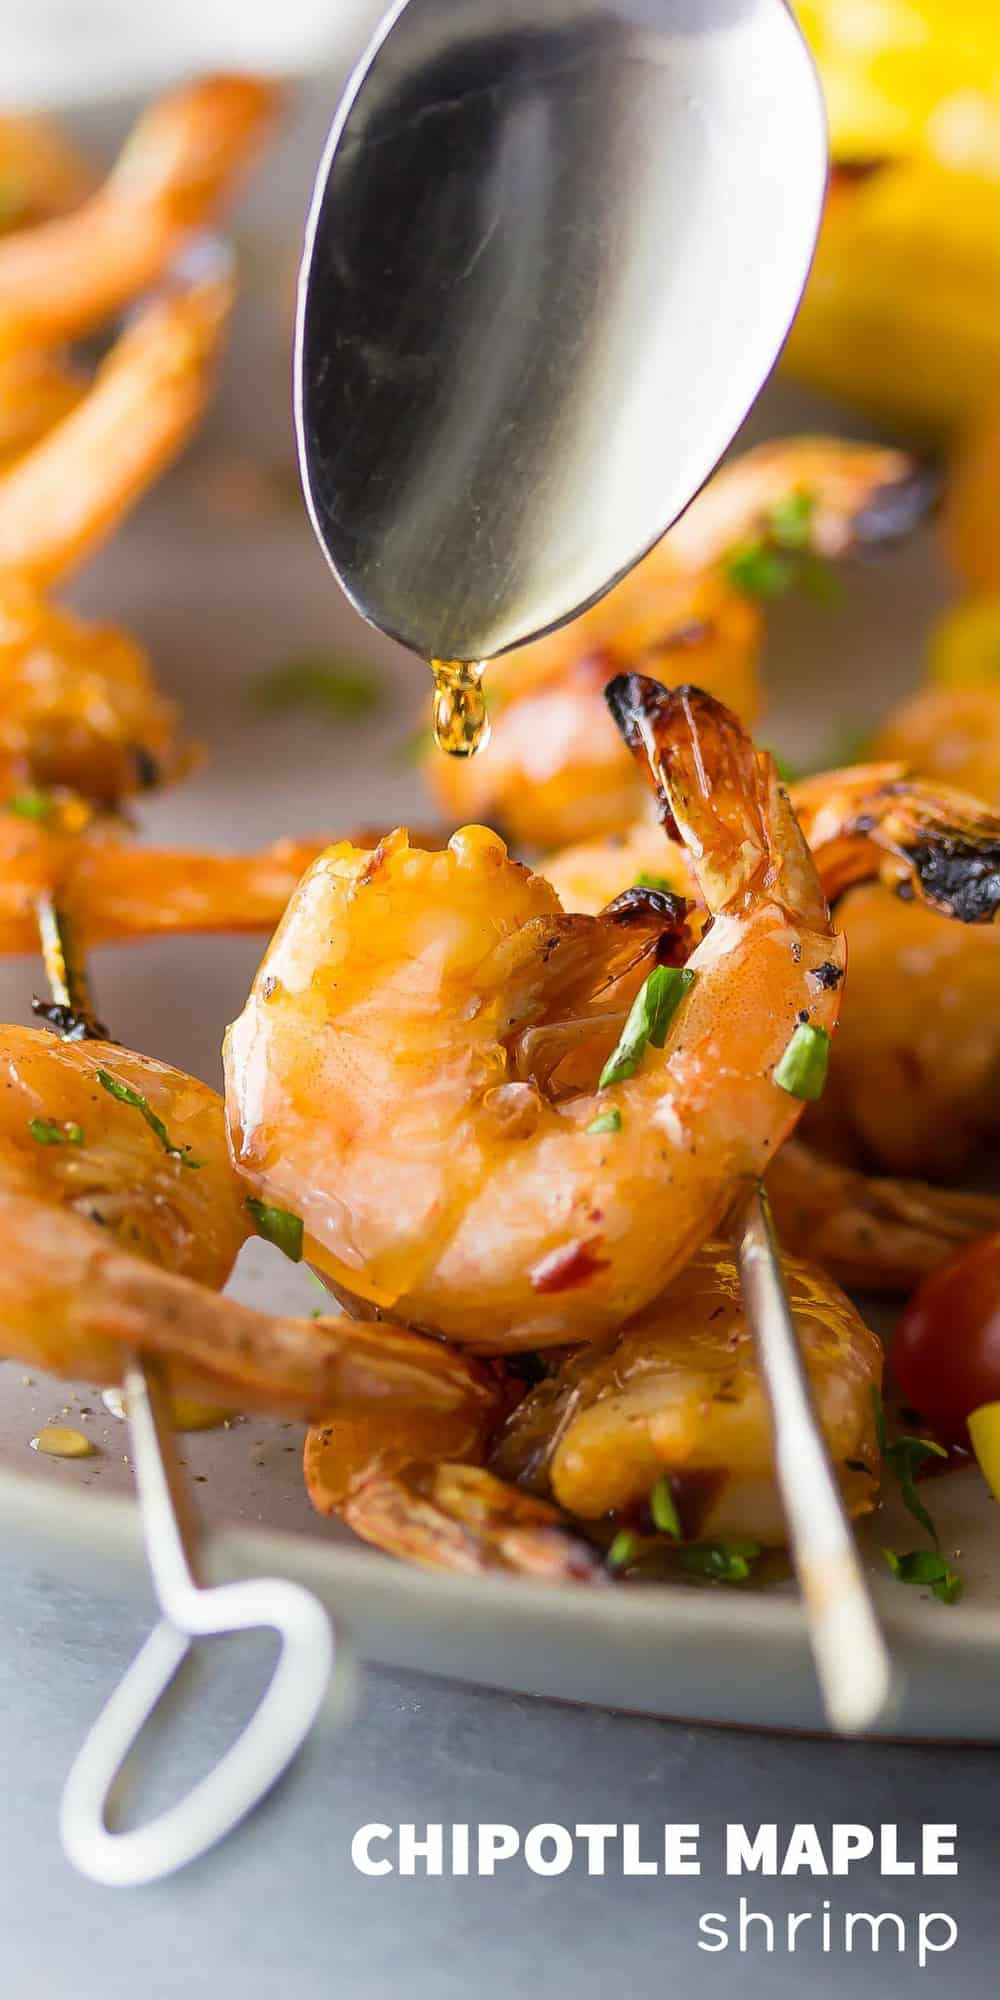 Chipotle Grilled Shrimp Skewers with Maple Glaze being drizzled over